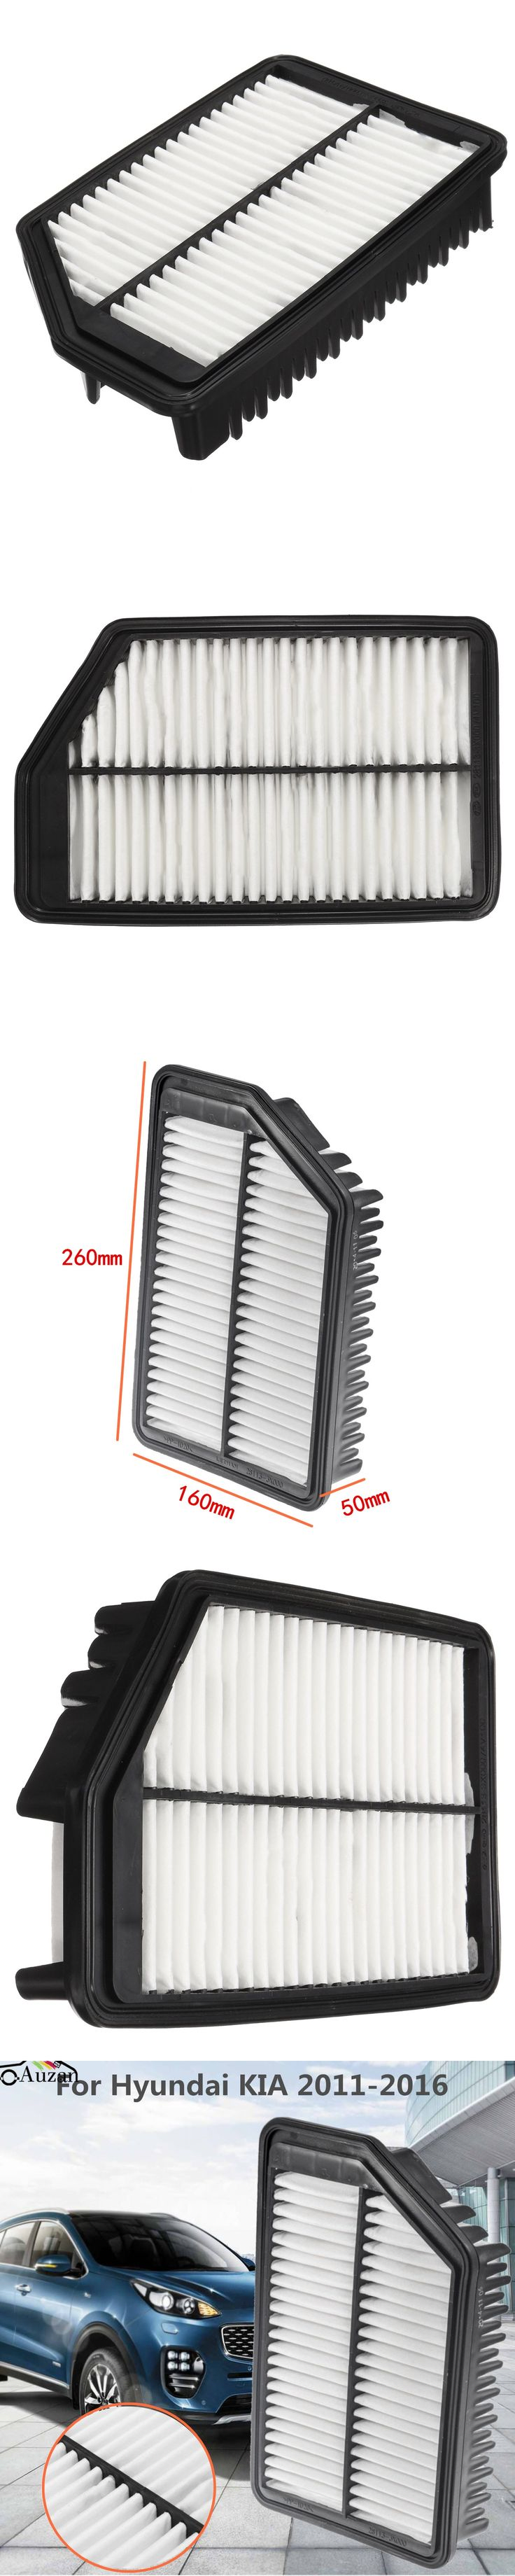 New Replacement Engine Air Cleaner Filter 28113-3X000 For Hyundai /KIA 2011-2016